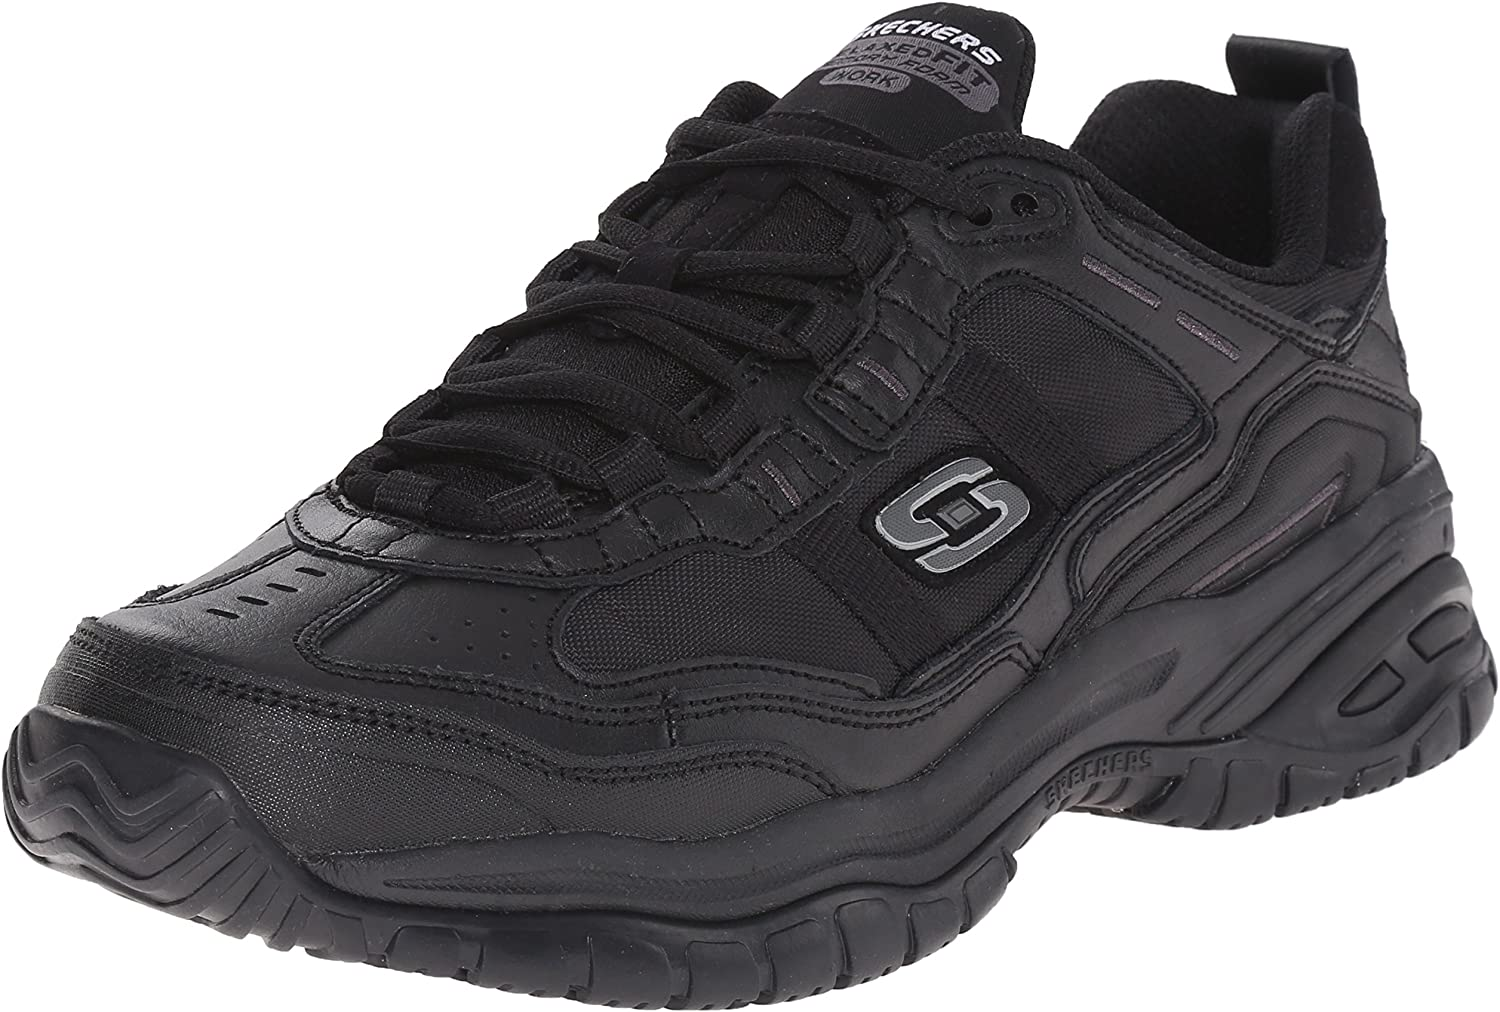 Skechers Work Soft Stride: Shoes